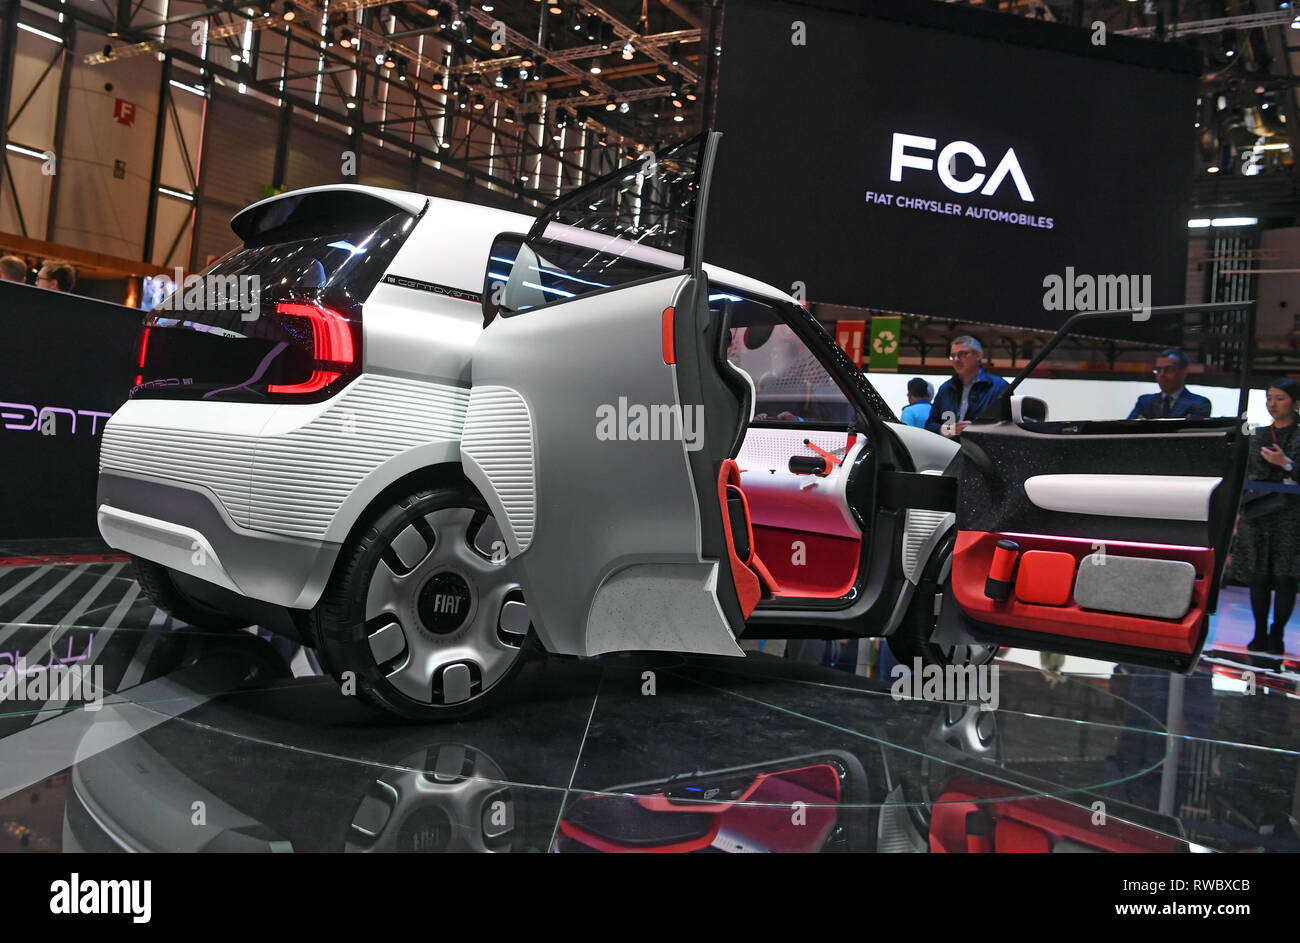 "Genf, Switzerland. 05th Mar, 2019. The electric Fiat Concept Centoventi is presented at the Geneva Motor Show on the first press day. In the background you can see the writing ""FCA Fiat Chrysler Automobiles"" to which Fiat belongs. The 89th Geneva Motor Show starts on 7 March and lasts until 17 March. Credit: Uli Deck/dpa/Alamy Live News Stock Photo"